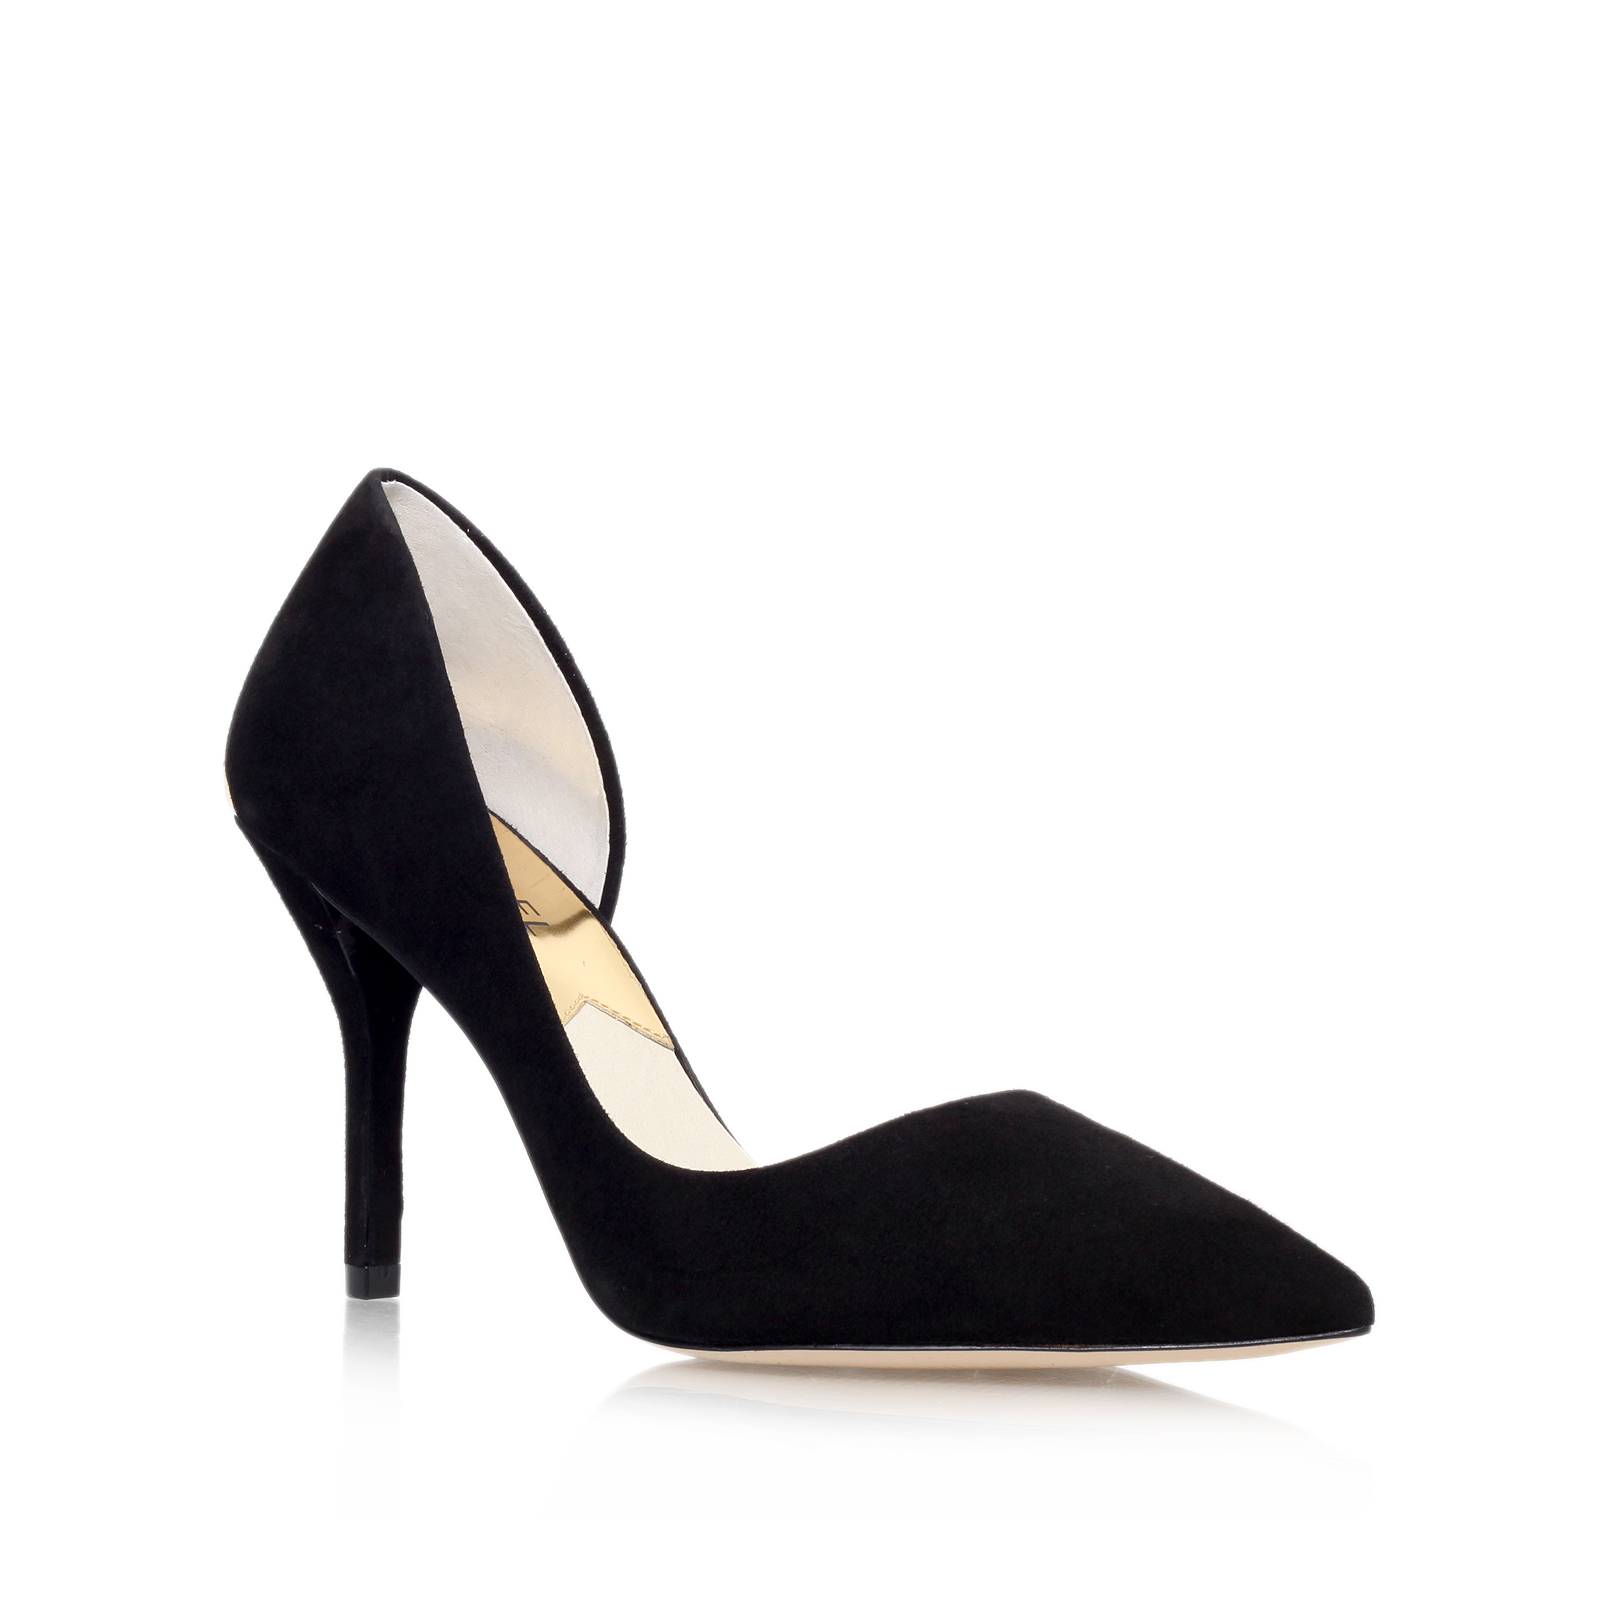 9cc4a66401f5 JULIETA PUMP Michael Michael Kors Julieta Pump Black Suede High Heel Court  Shoes by MICHAEL MICHAEL KORS